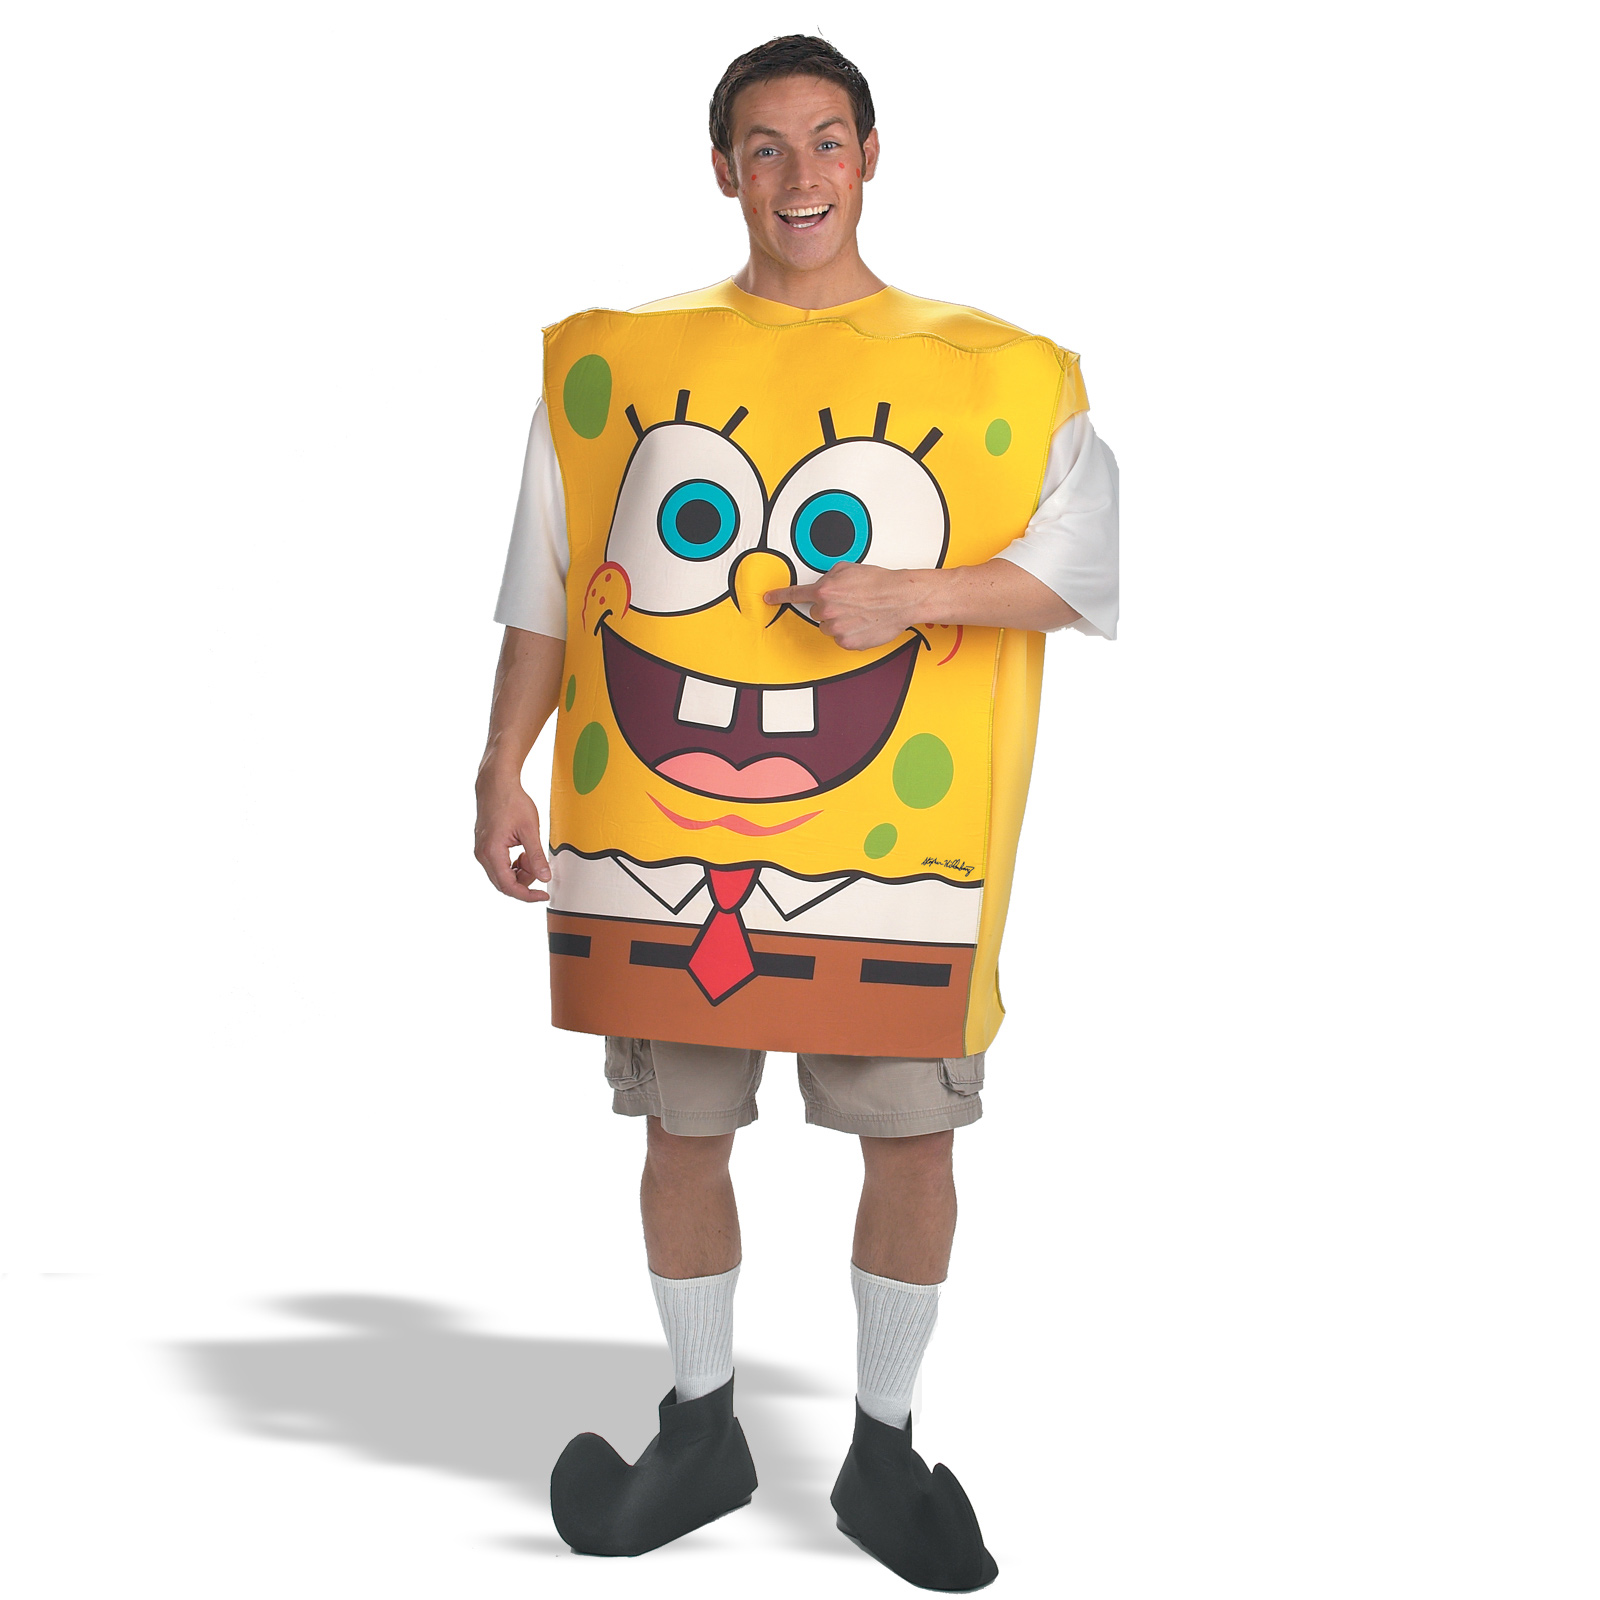 Costume Ideas for the Broke and Lazy!